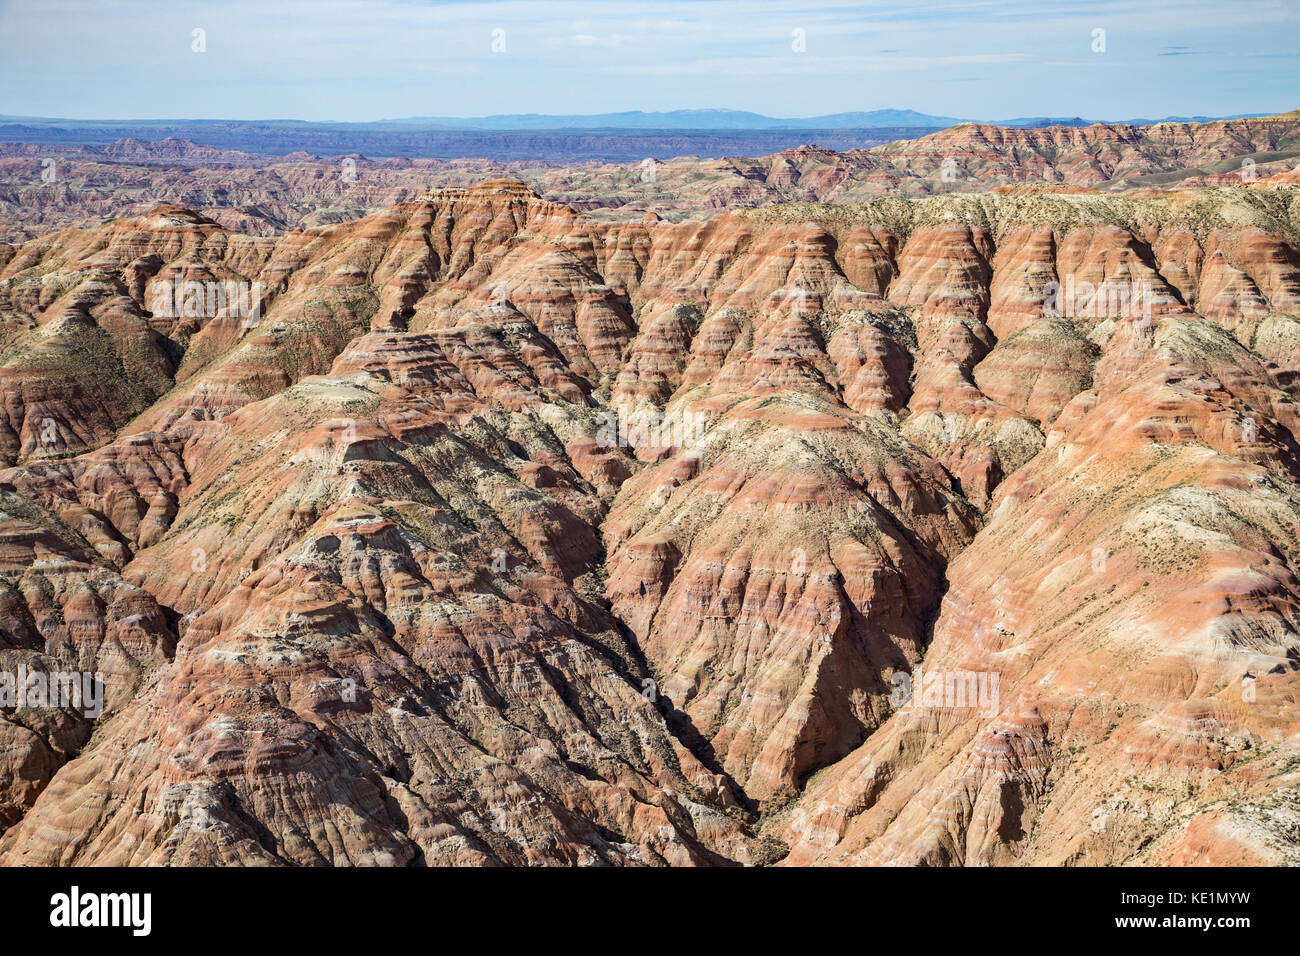 Aerial photos of  the Sheep Mountain Badlands in the Bighorn Basin of Wyoming - Stock Image